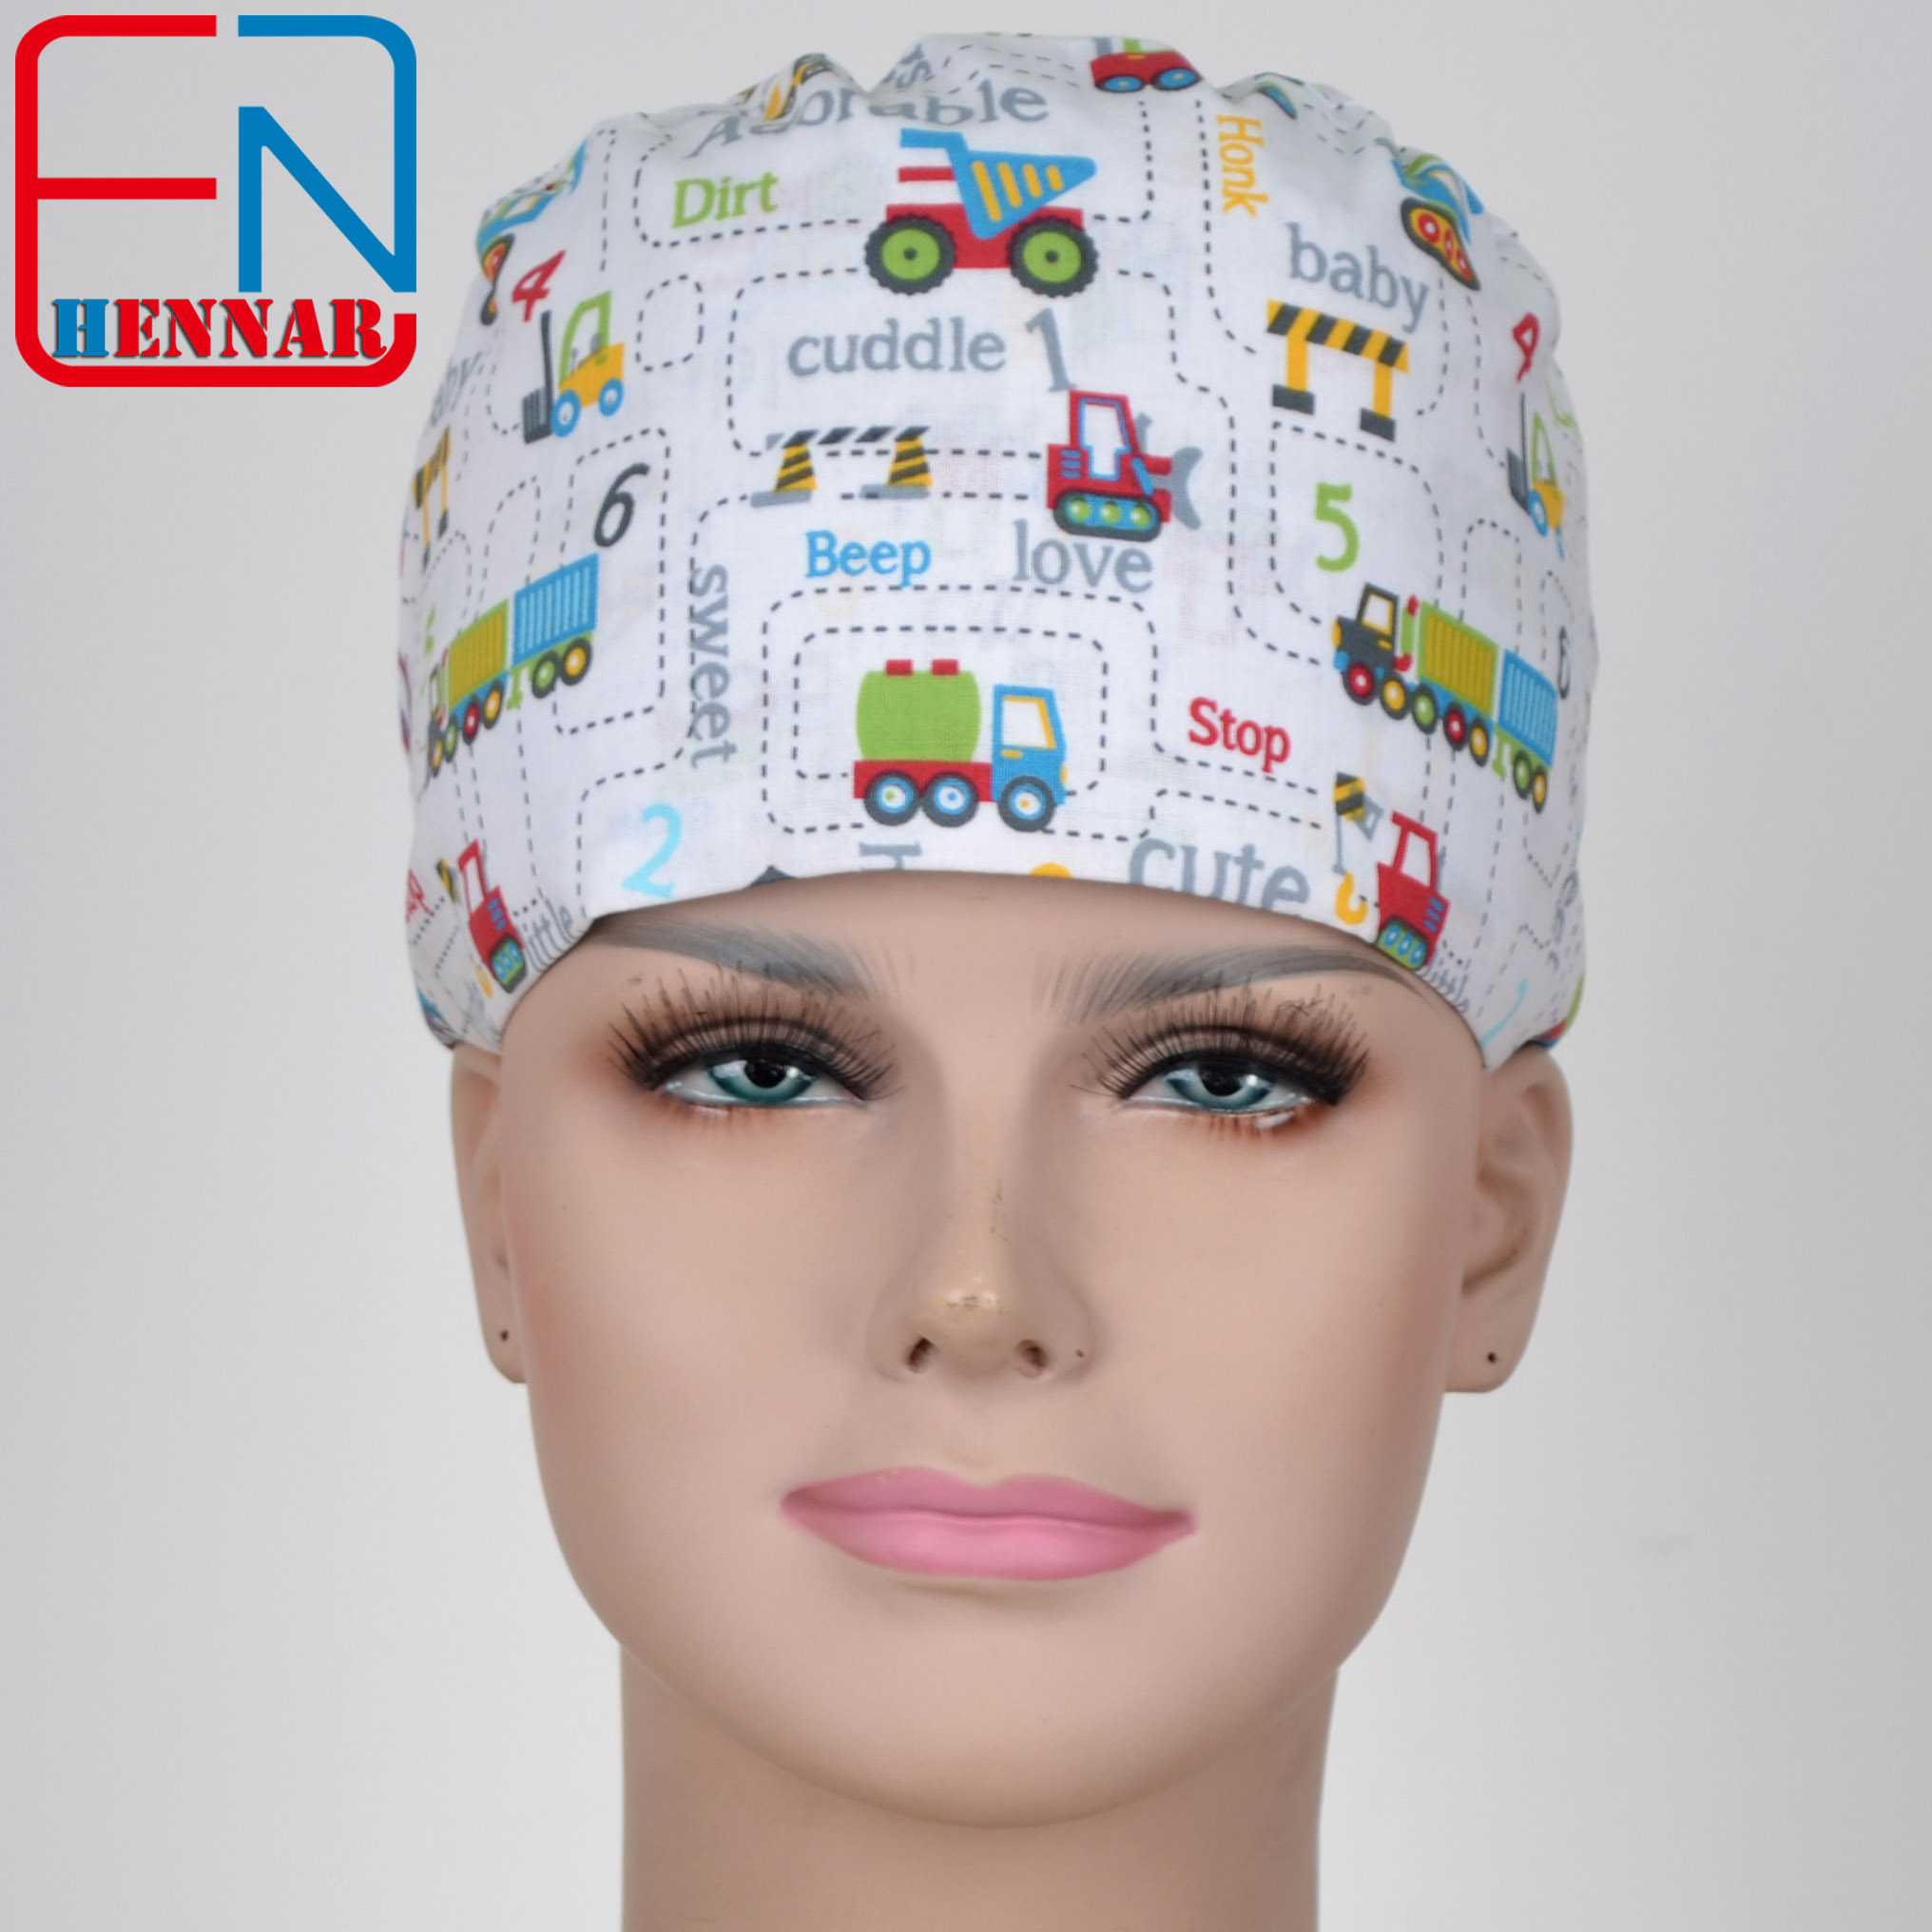 Hennar Scrub Caps Fabric 100% Cotton Doctor Surgical Scrub Cap Adjustable Medical Working Cap For Women Hospital Beauty Pharmacy